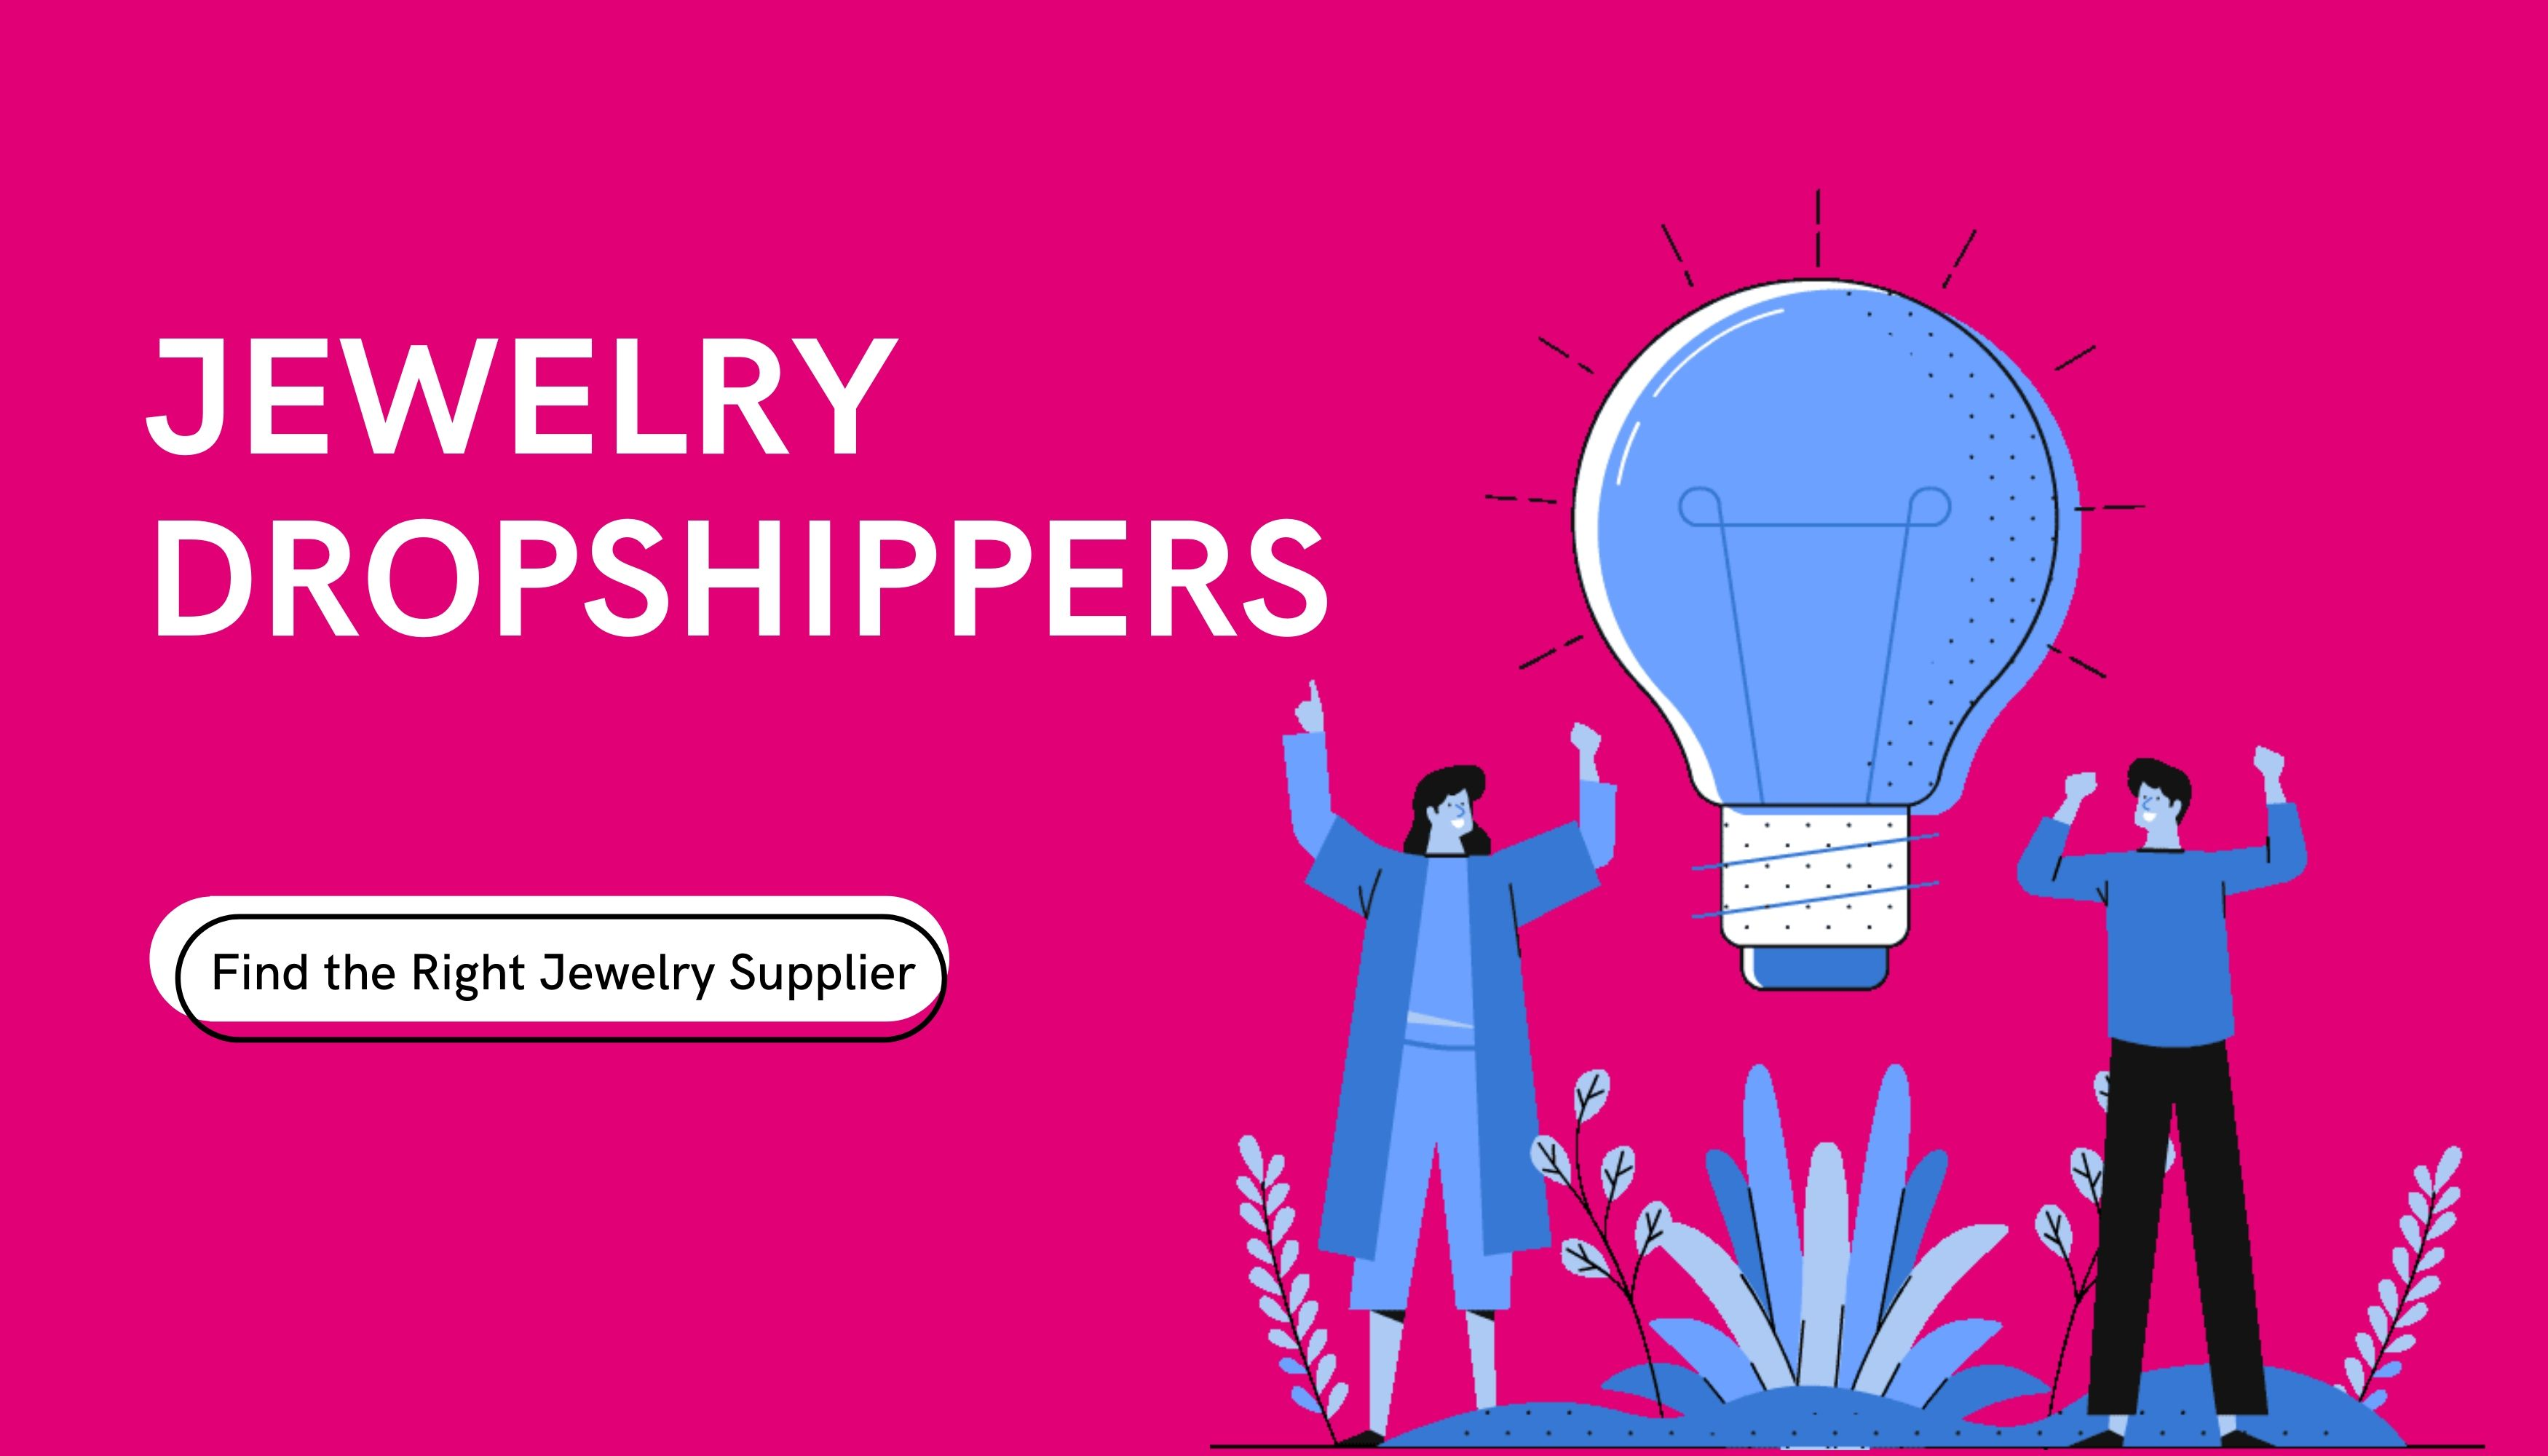 Jewelry Dropshippers: Find Best Jewelry Suppliers to Dropship